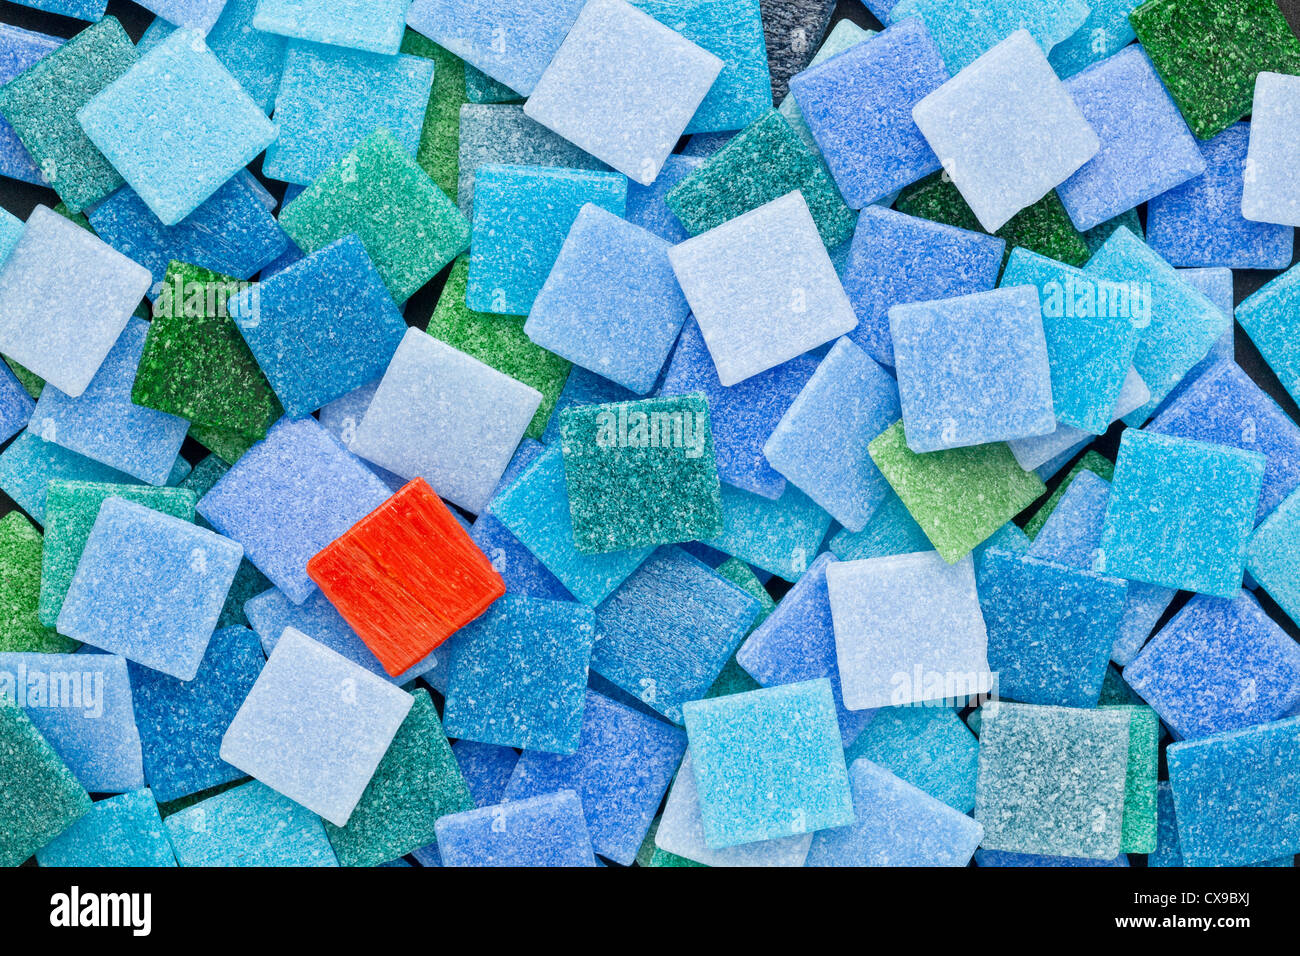 random background of blue and green glass mosaic tiles with a ...